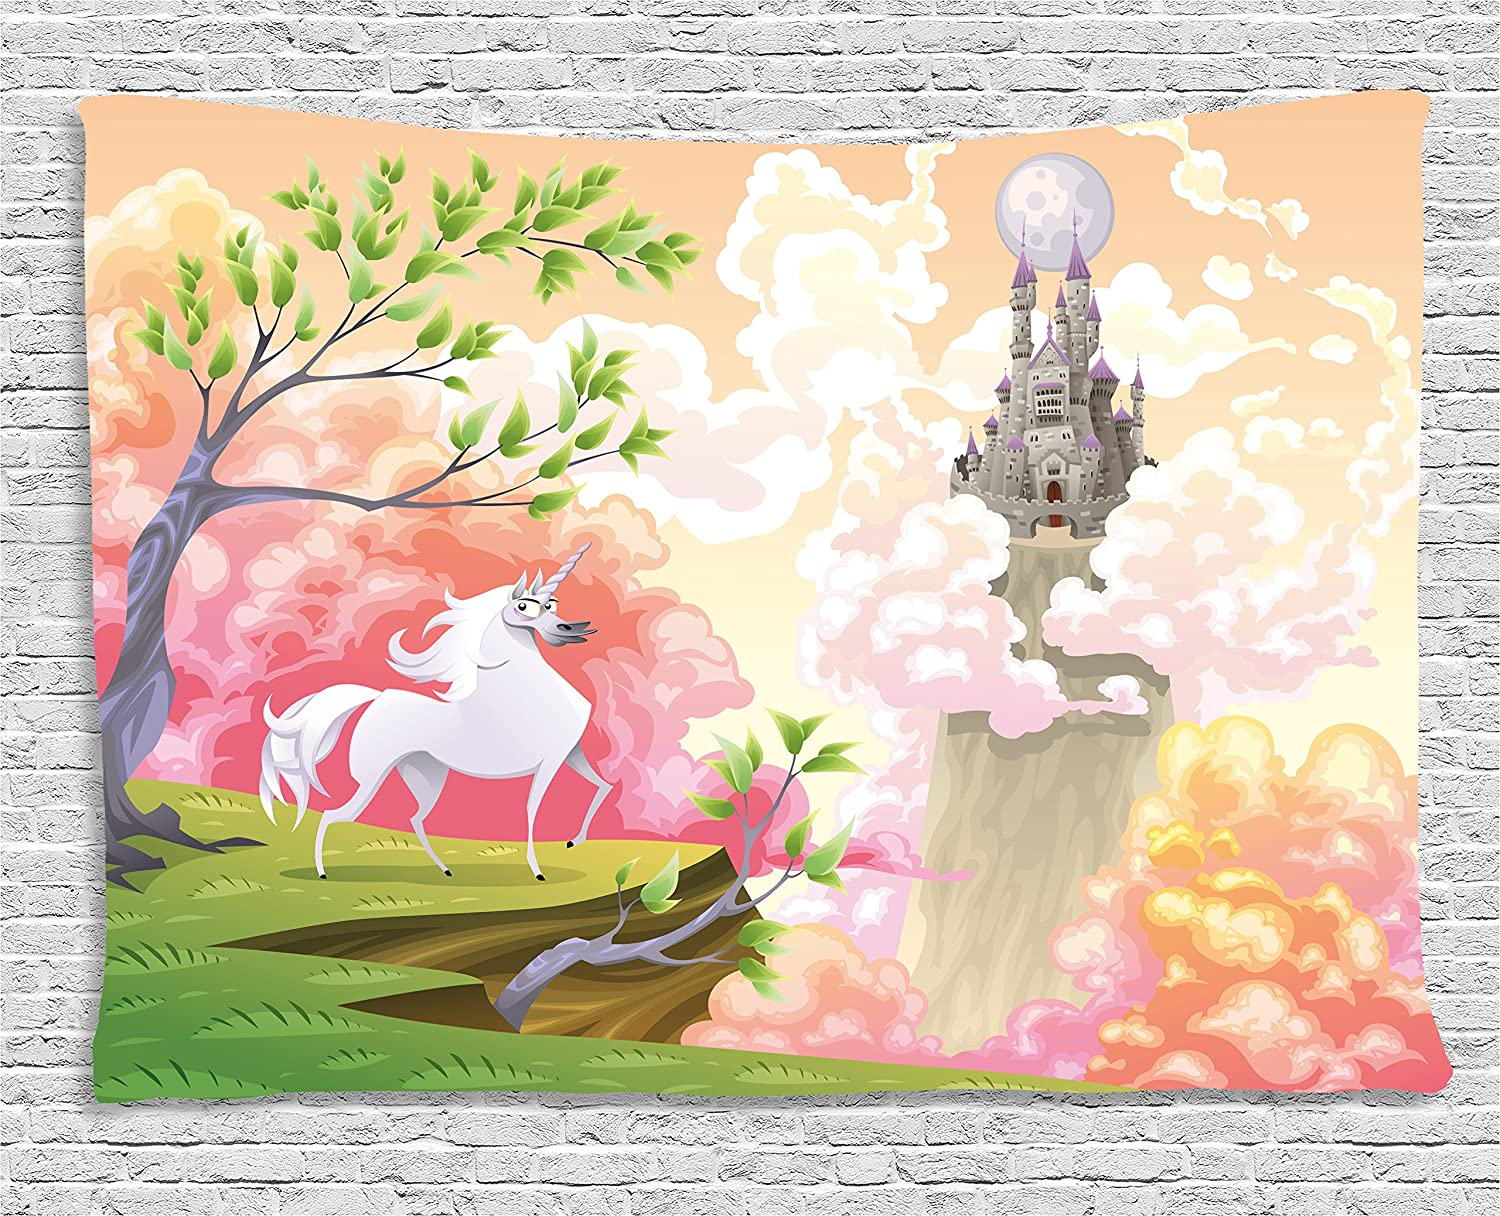 60WX40L Inches Multi Ambesonne Cartoon Decor Tapestry by Wall Hanging for Bedroom Living Room Dorm Fairy Tale Castle Scenery in Floral Garden Princess Kids Girls Fantasy Picture